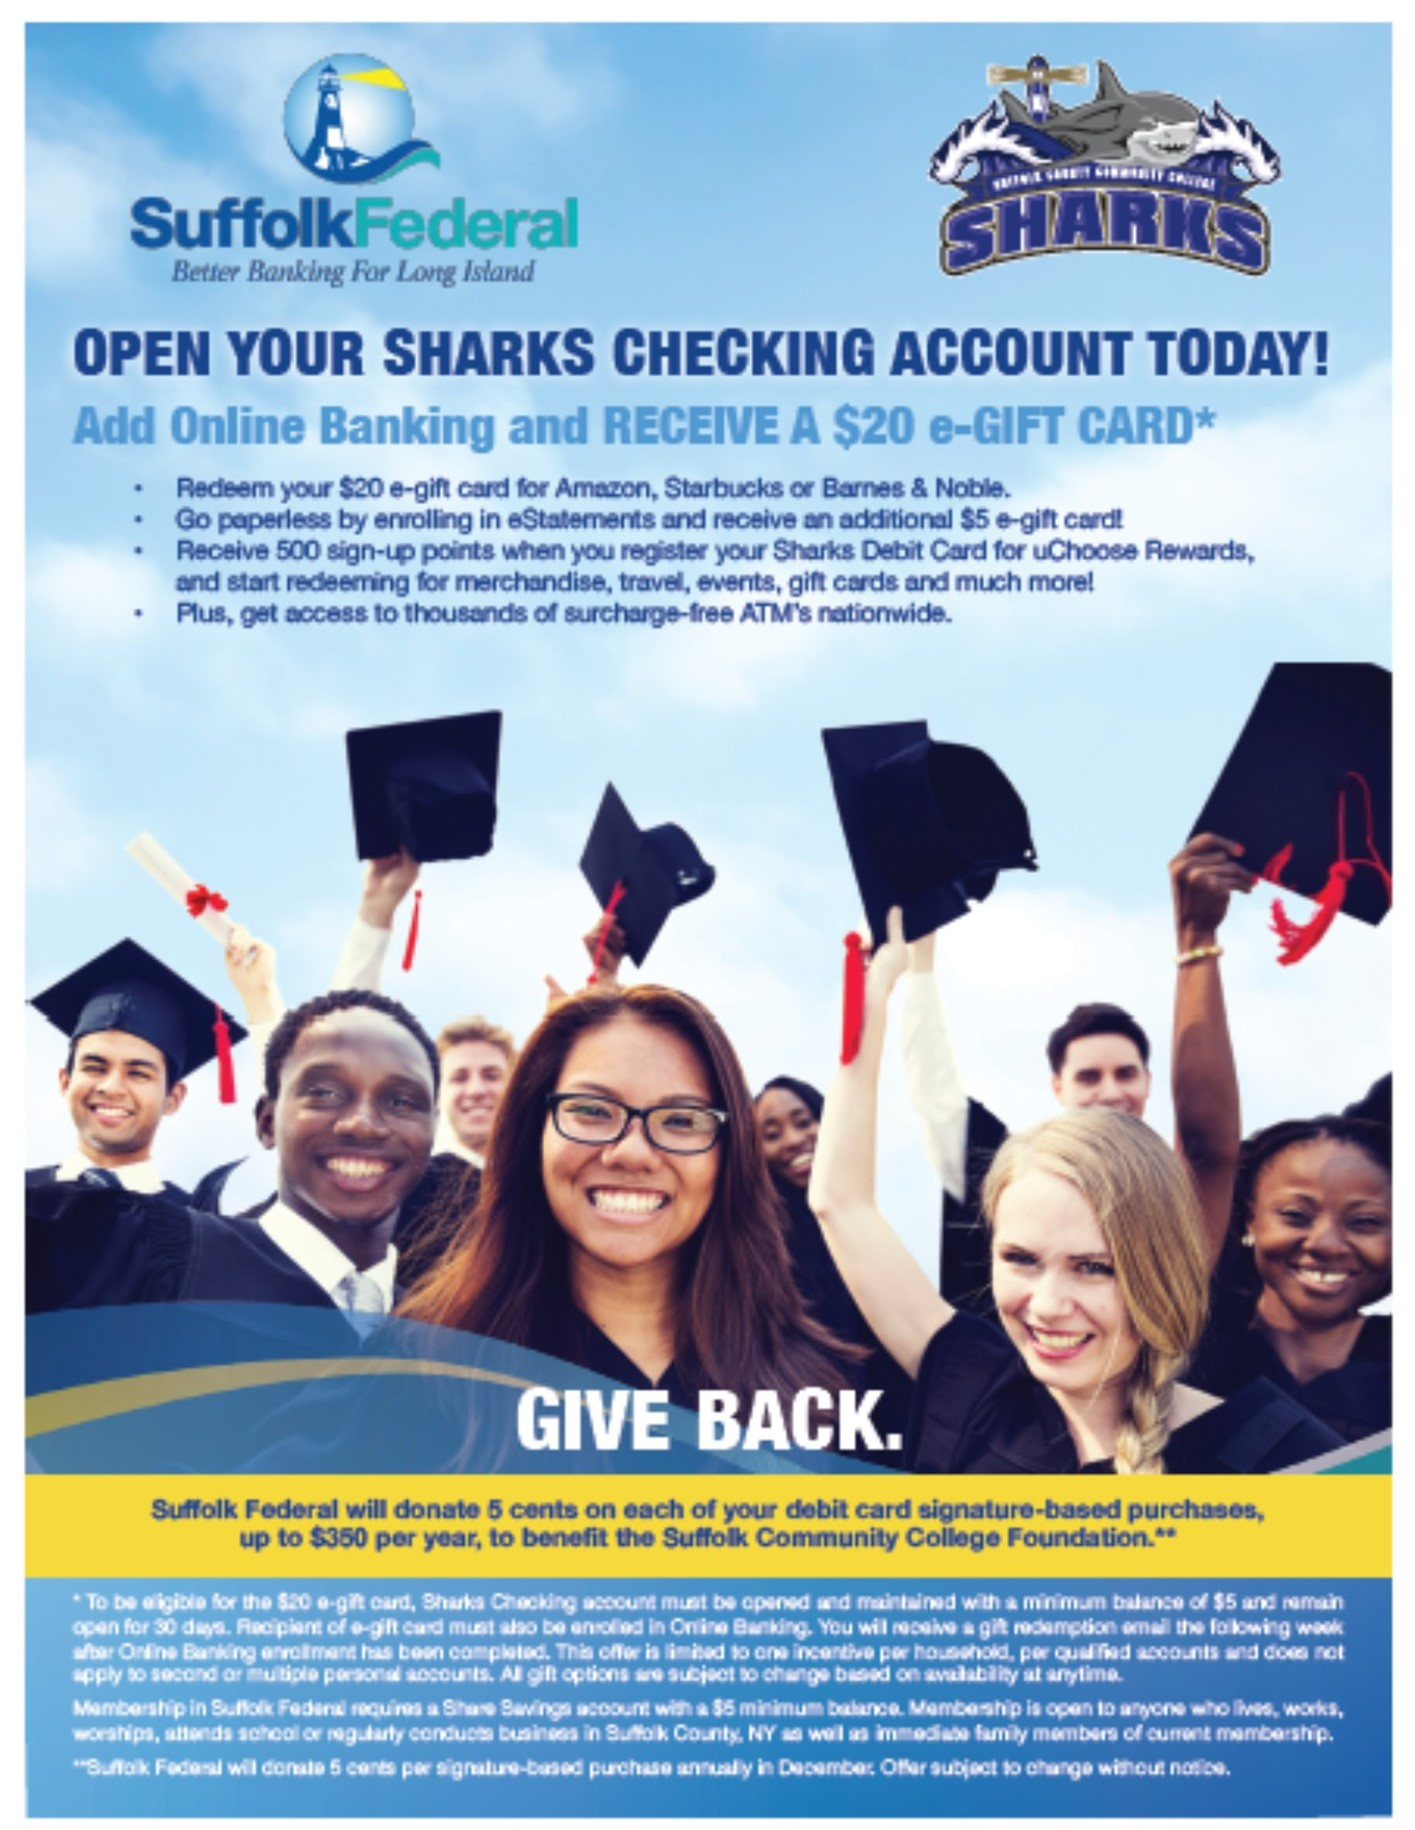 suffolk-federal-credit-union/Sharks-Checking-2020-8-12